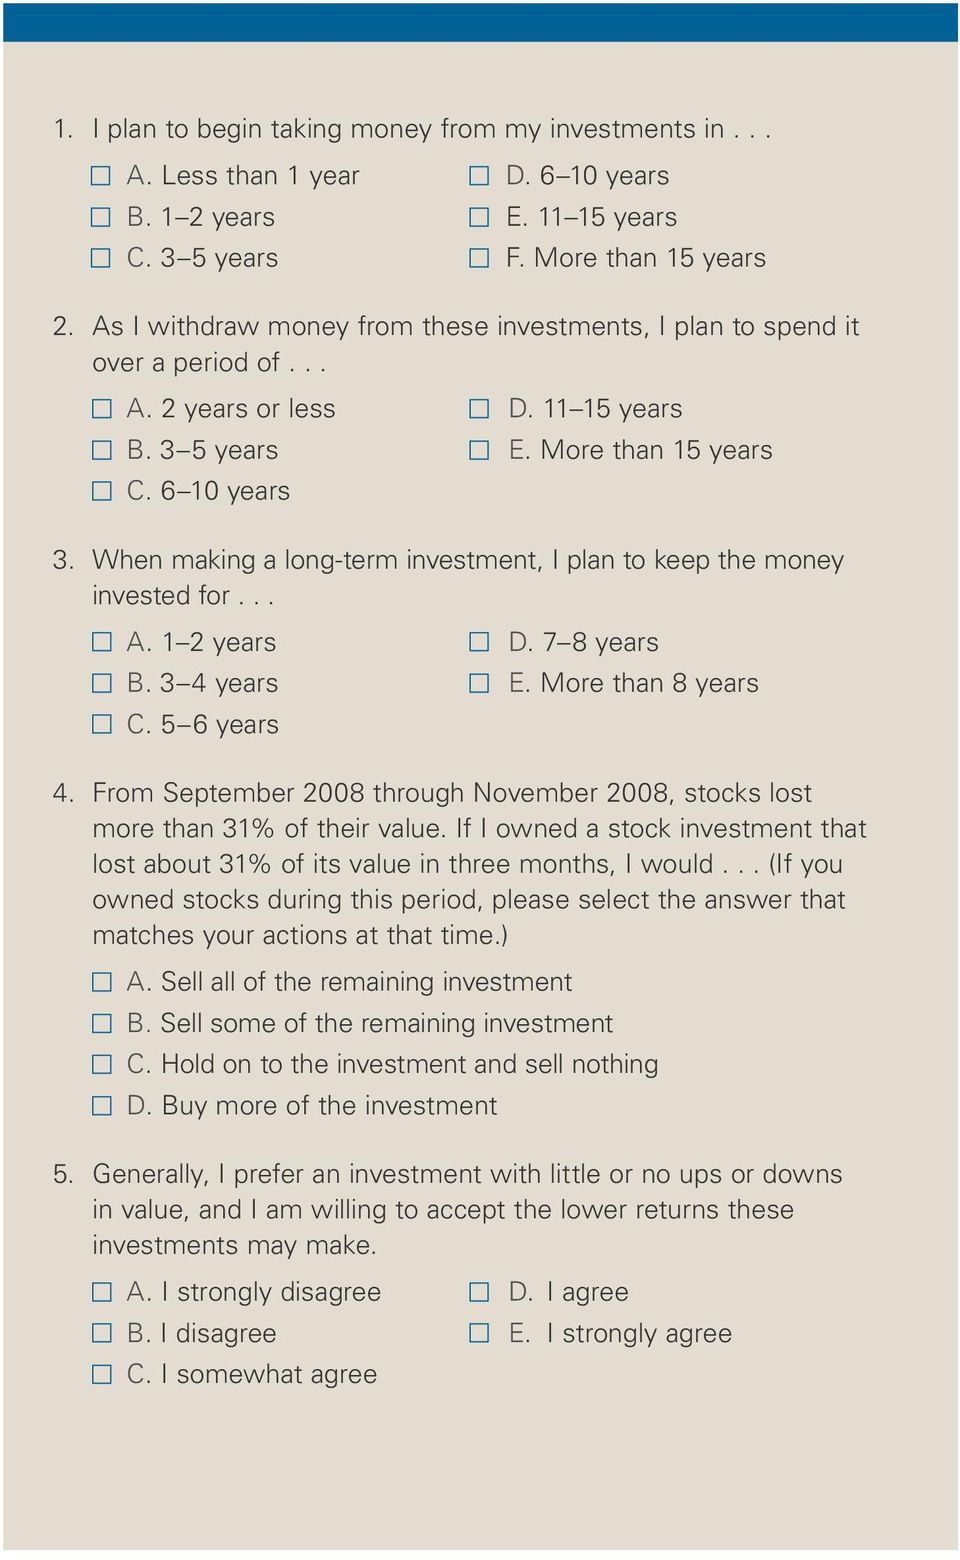 When making a long-term investment, I plan to keep the money invested for... A. 1 2 years B. 3 4 years C. 5 6 years D. 7 8 years E. More than 8 years 4.